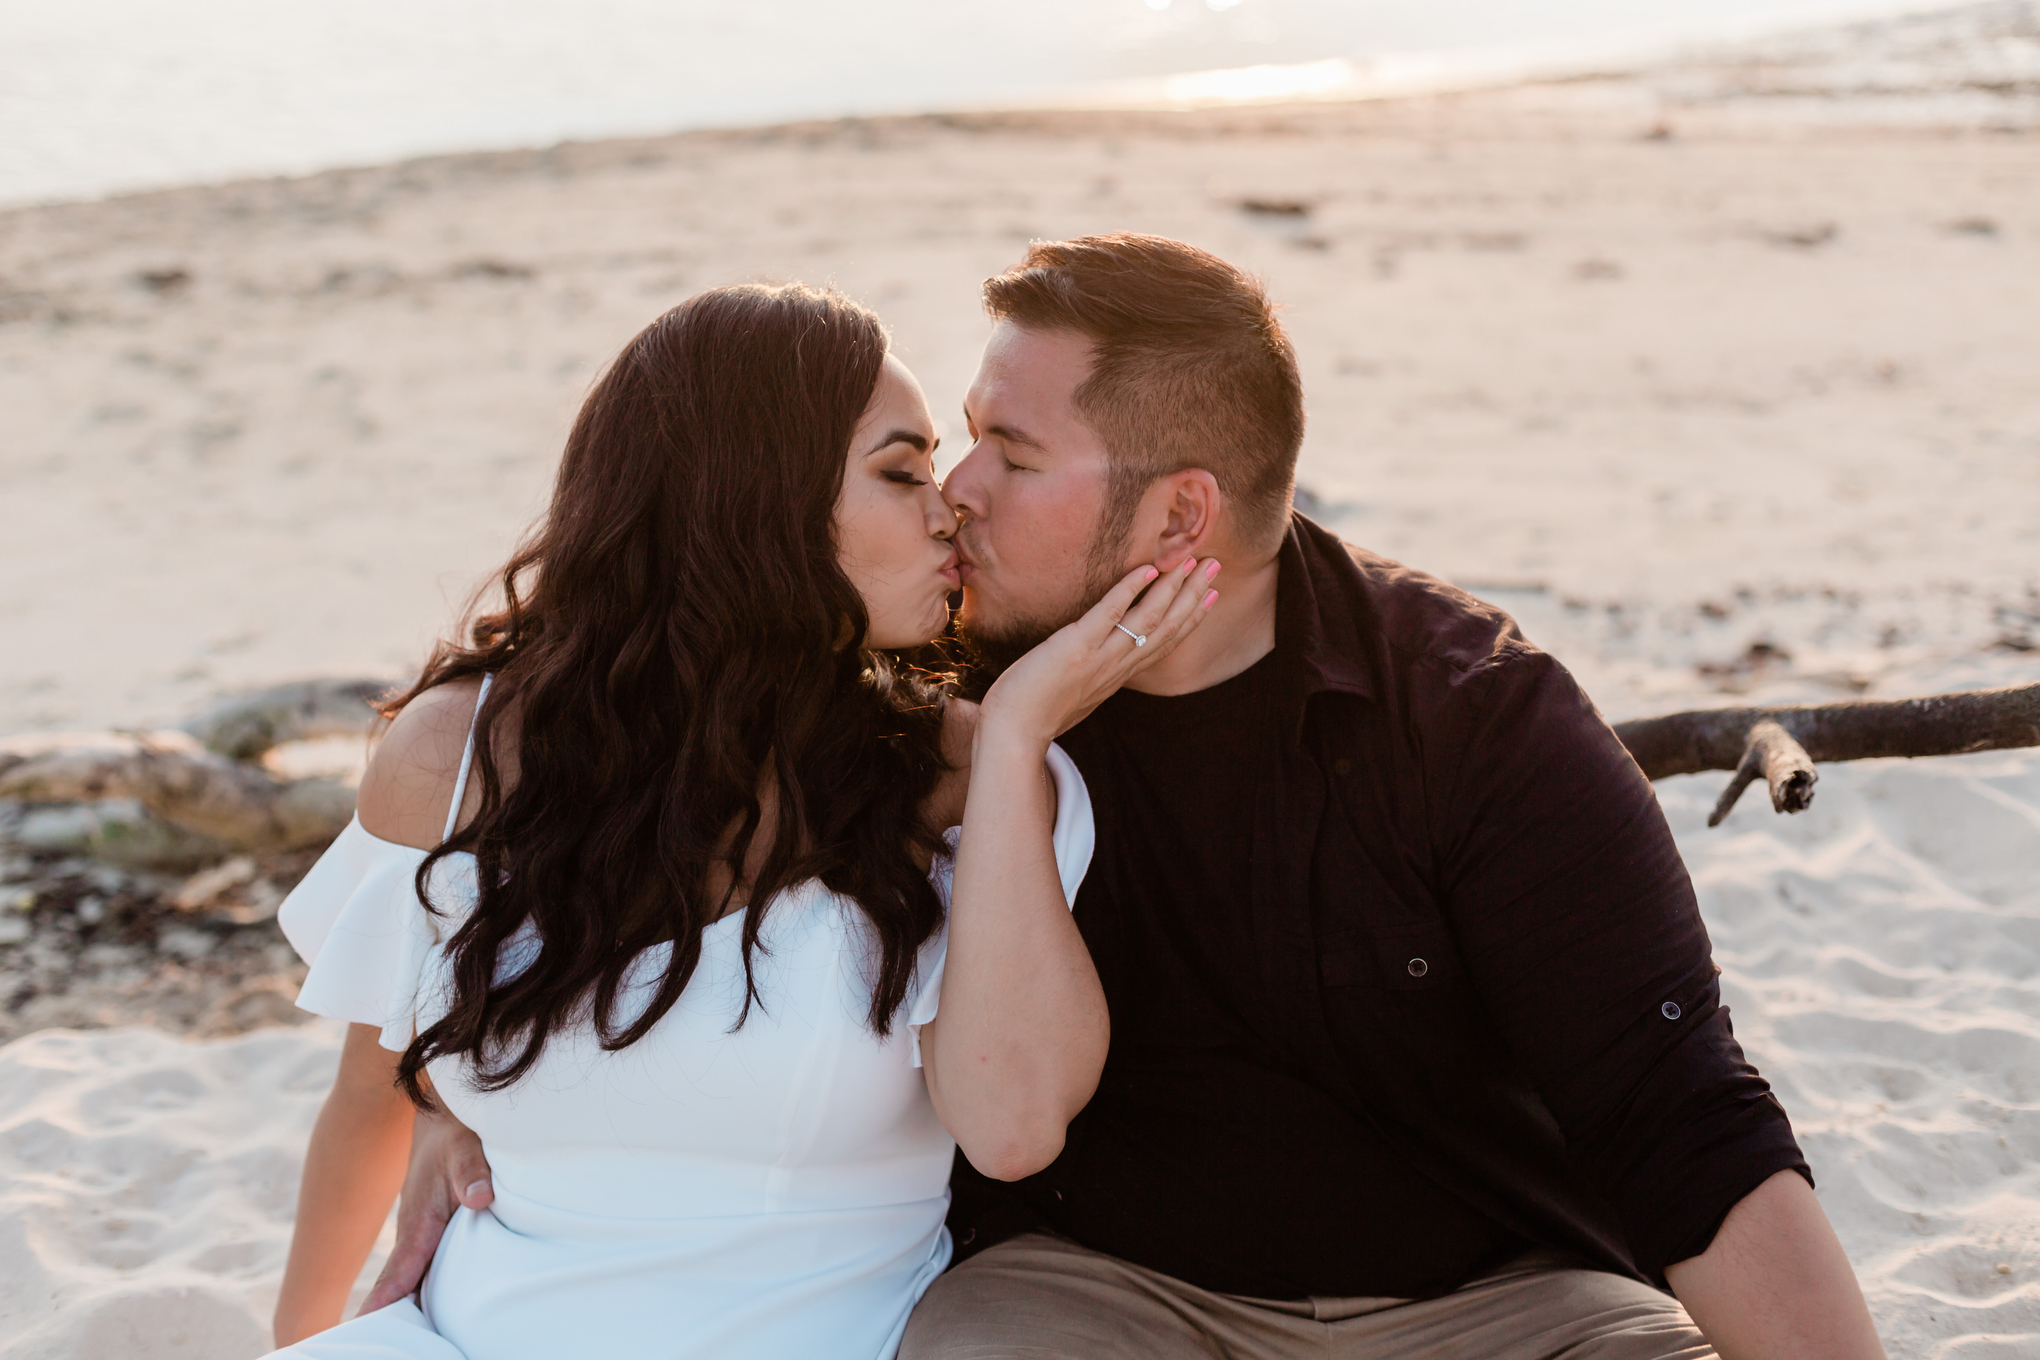 21PIXELS_Guam_Engagement_Photographer224.JPG